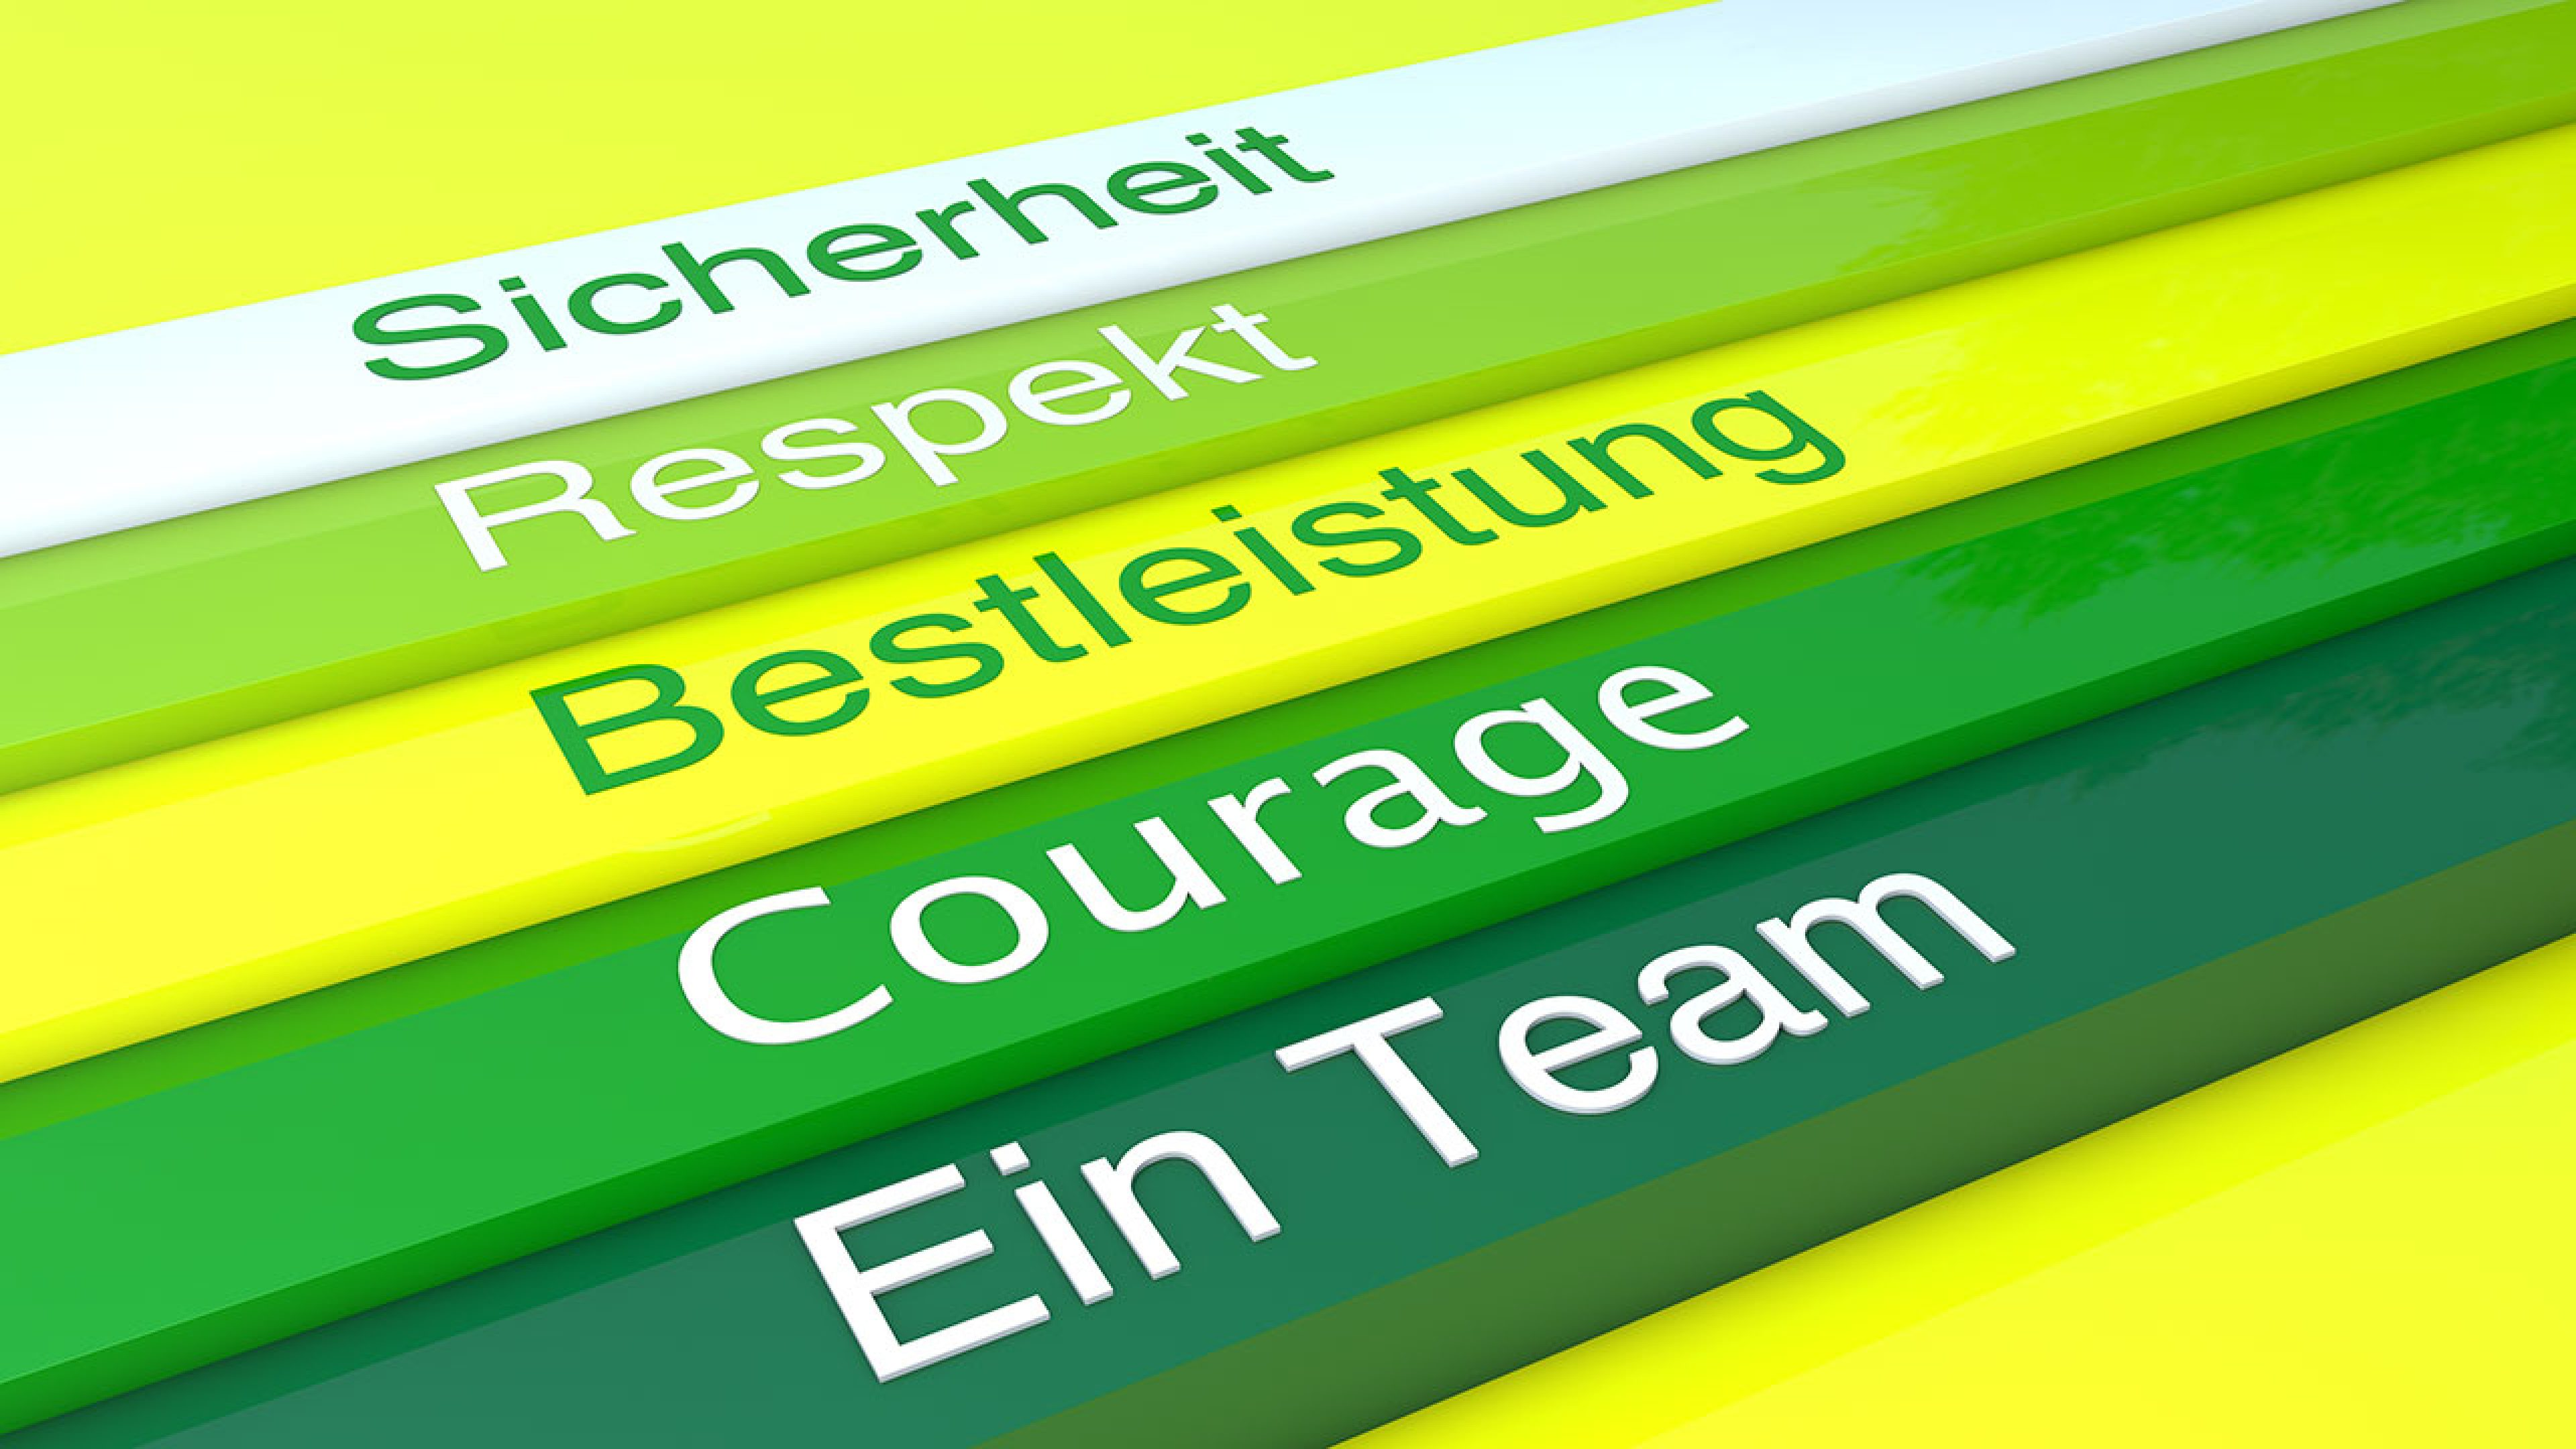 Unsere Werte - Our Values